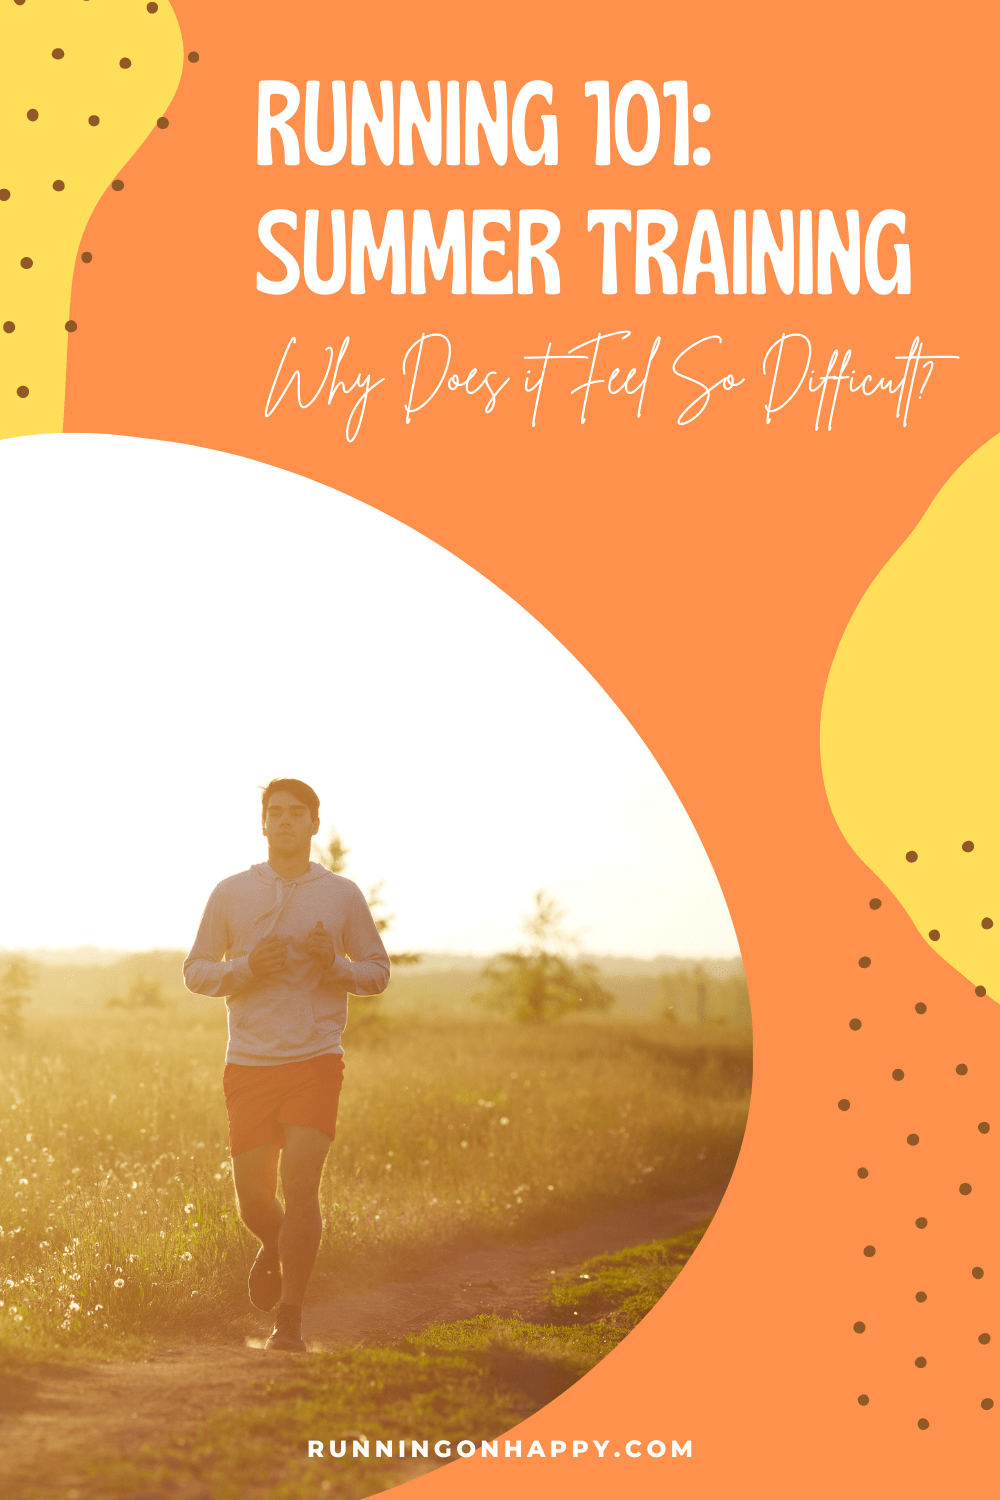 Running 101: Summer Training -- Why Does It Feel So Difficult? | Running on Happy